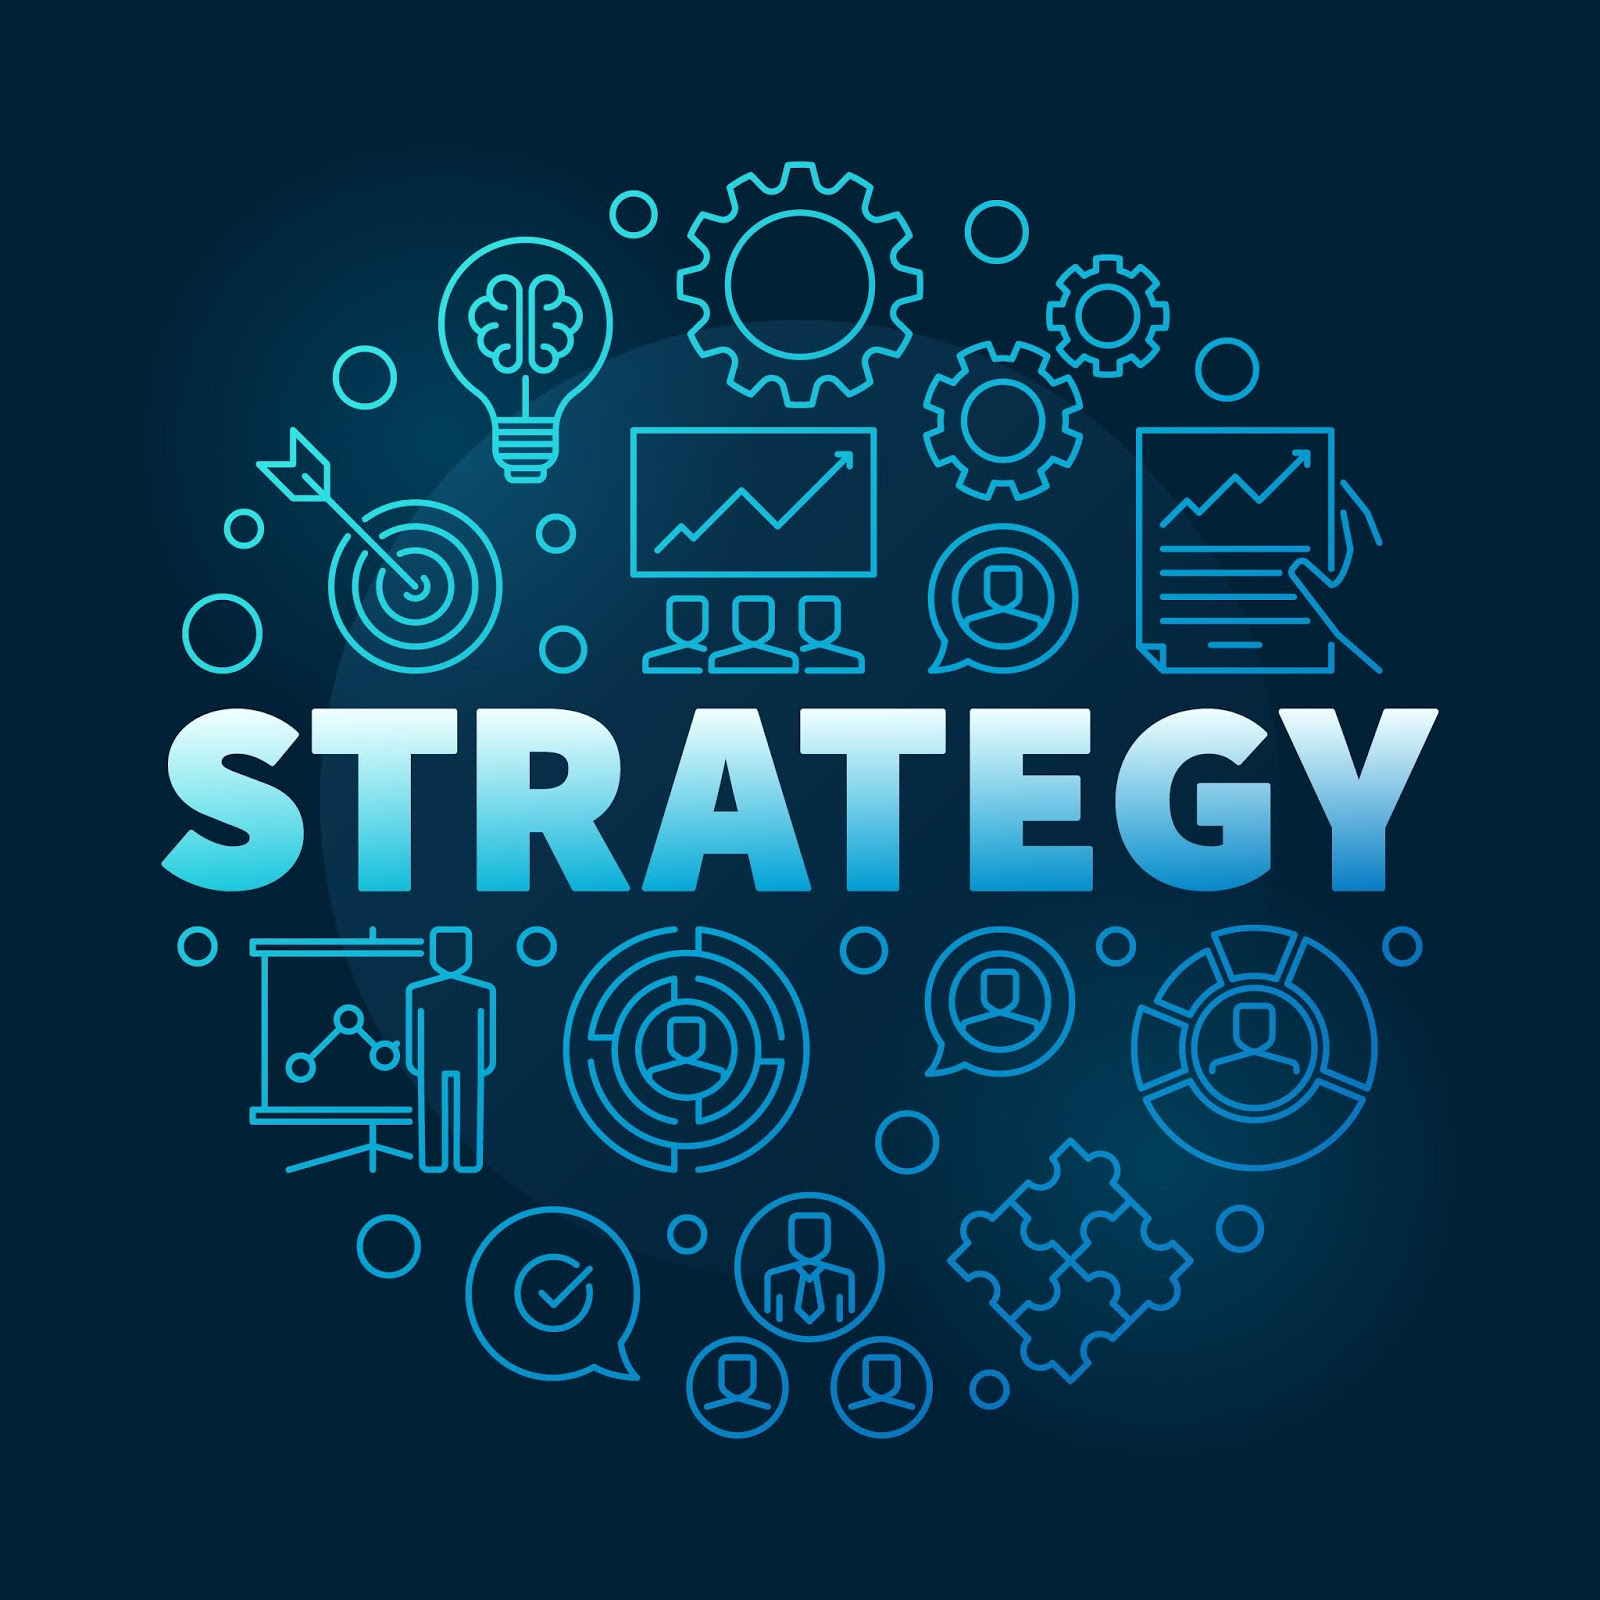 Vector Strategy Round Blue Outline Illustration Free Download Vector CDR, AI, EPS and PNG Formats